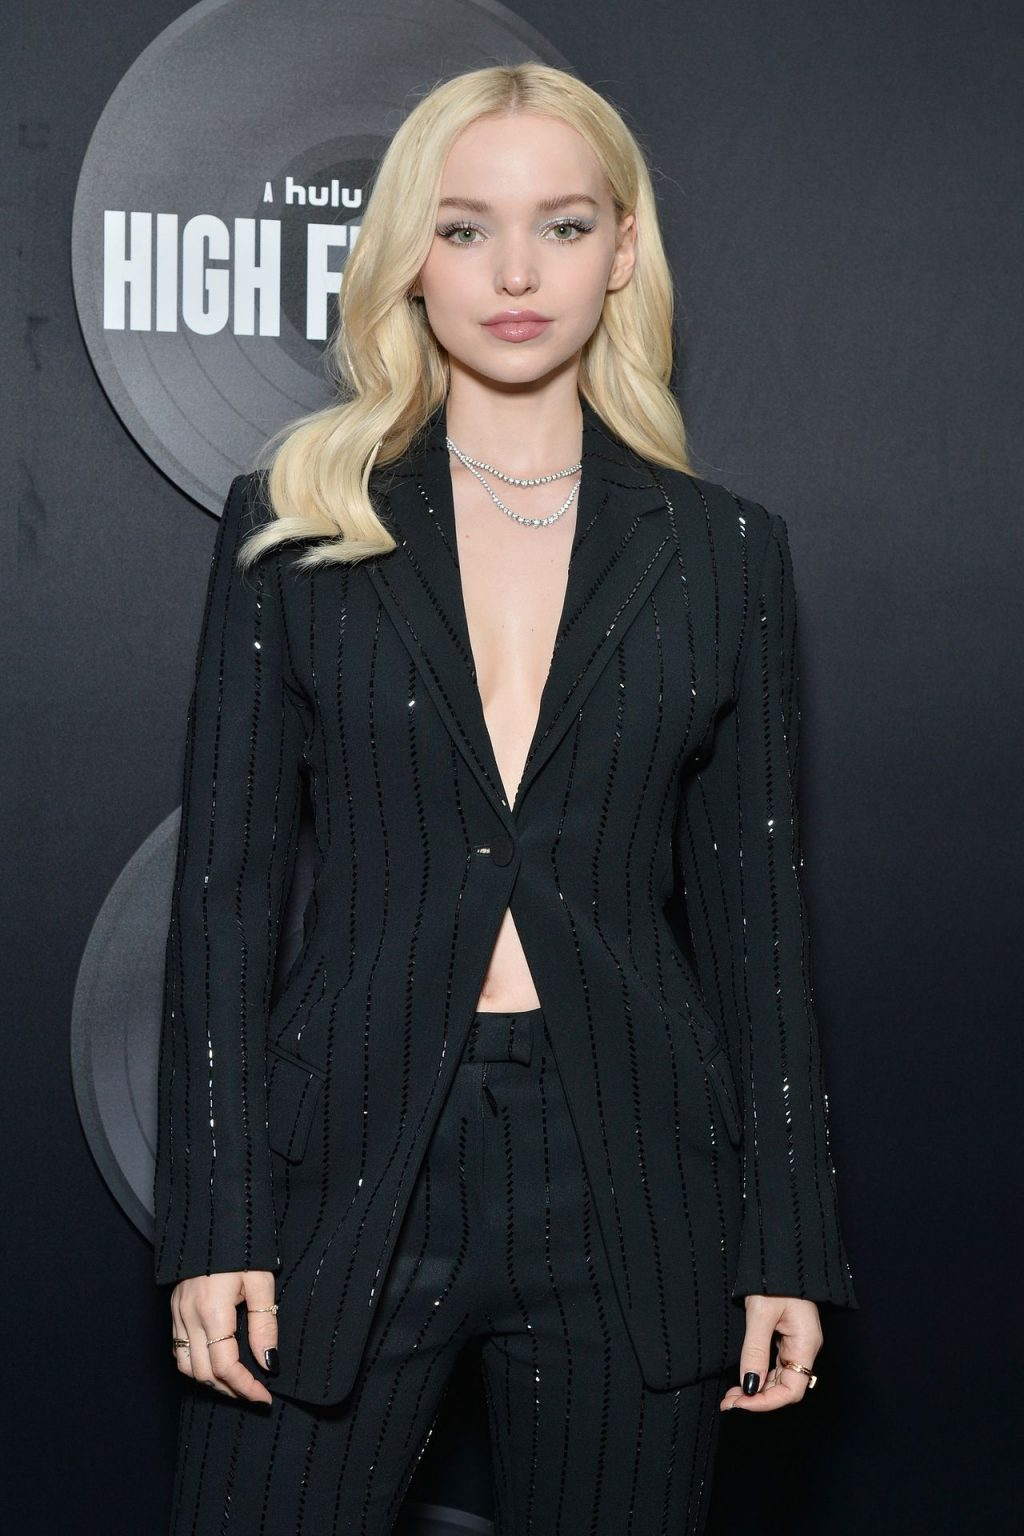 Dove Cameron Attends the Hulu's High Fidelity Premiere (81 Photos)